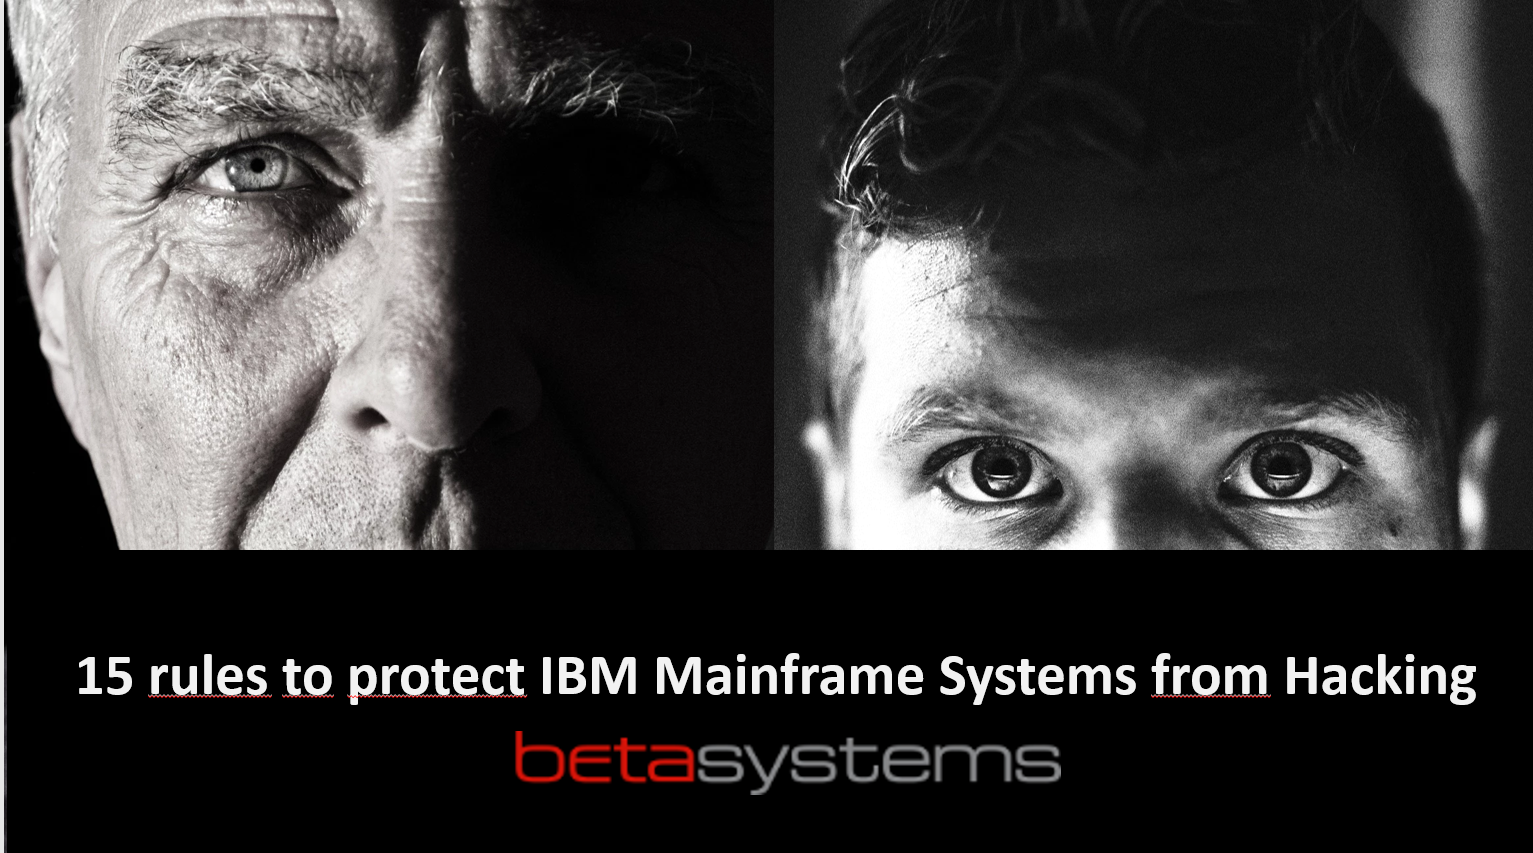 15 rules to protect IBM Mainframe Systems from hacking